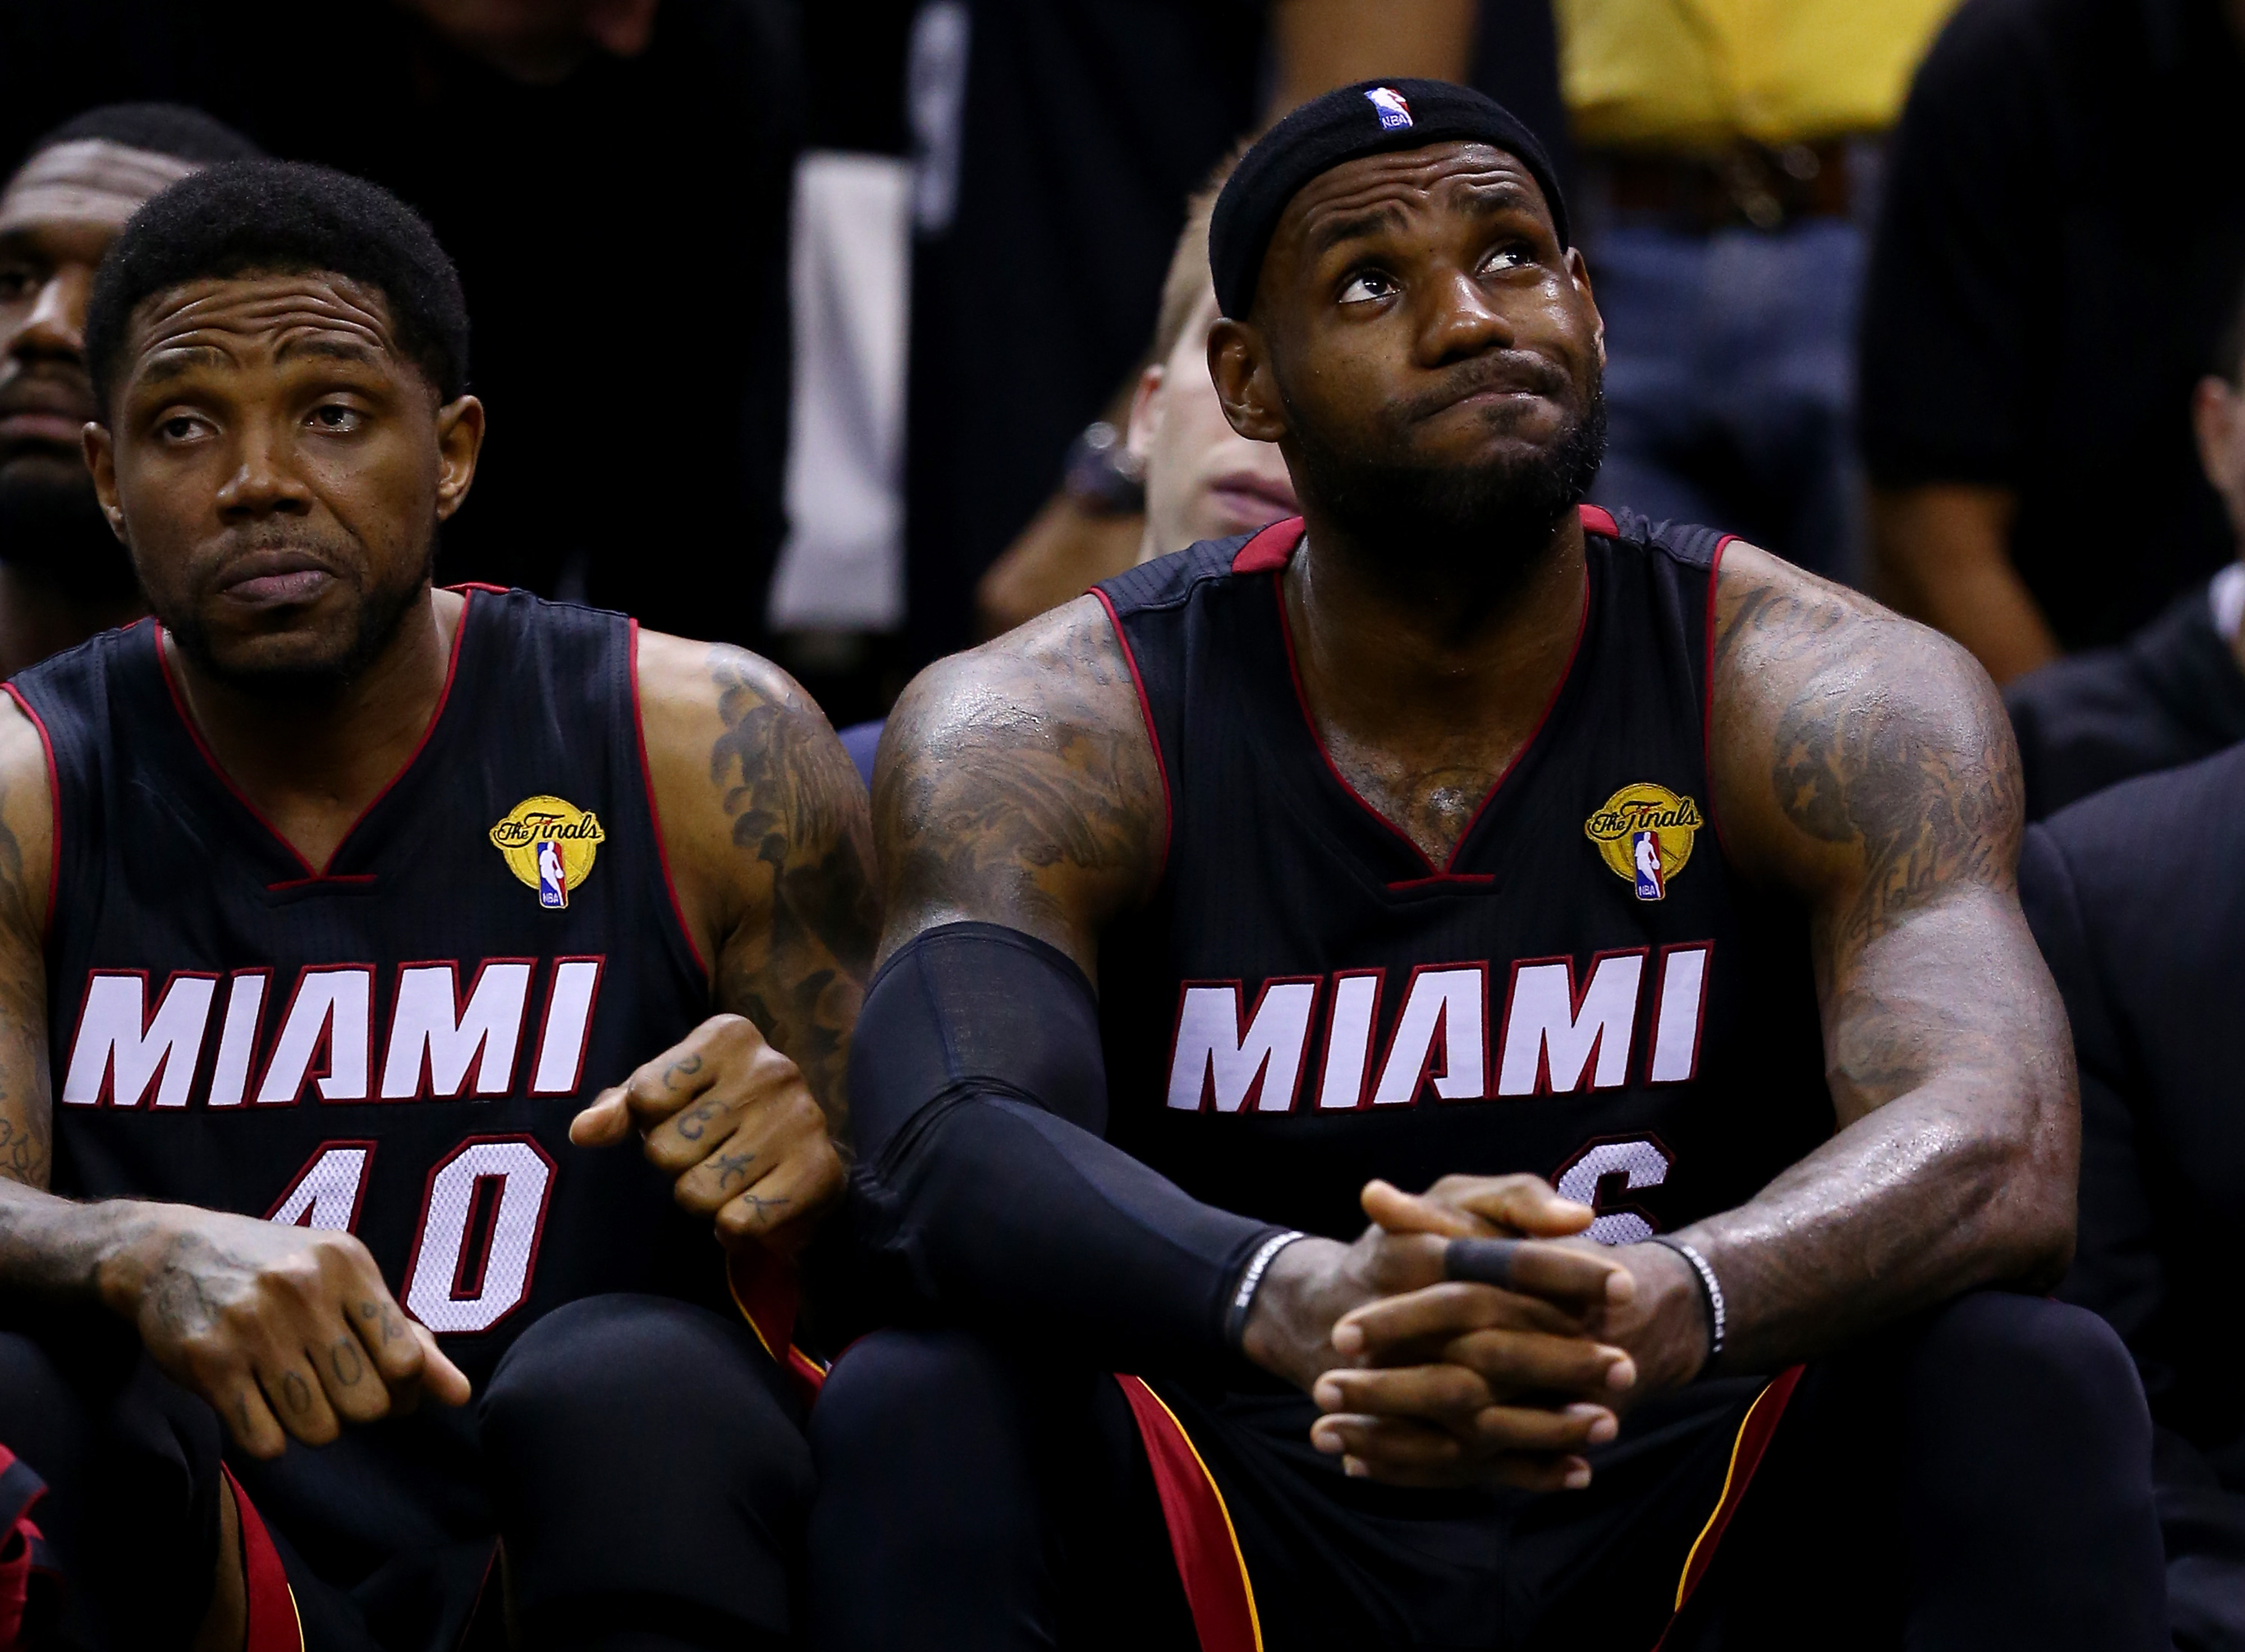 Even in defeat, all eyes are on LeBron James